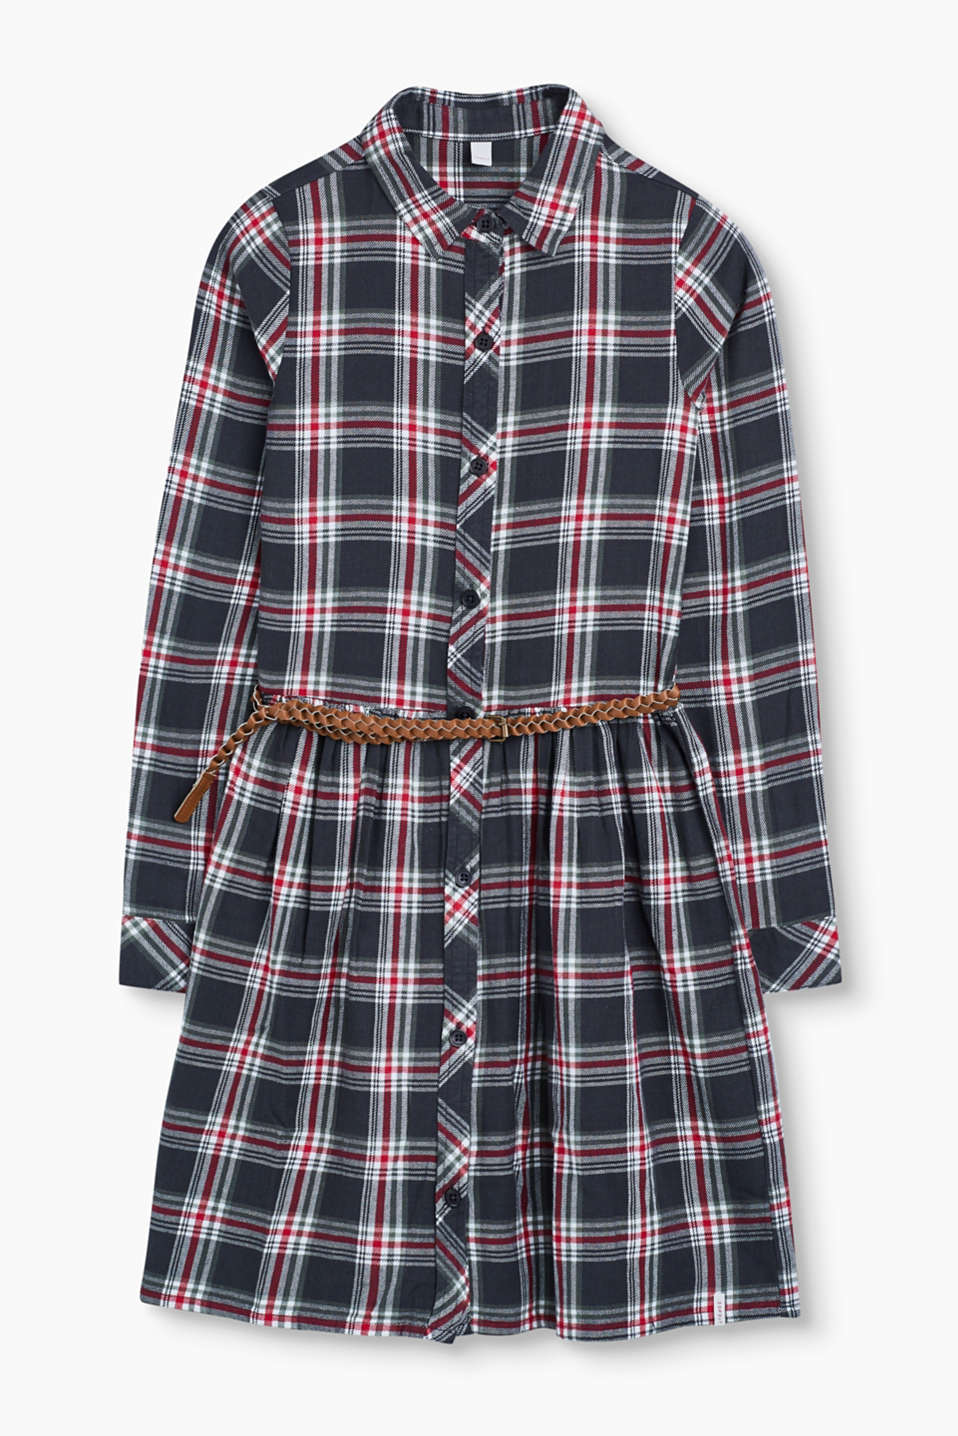 This fashionable swirling flared check dress made of soft cotton fabric is pretty and casual at the same time.